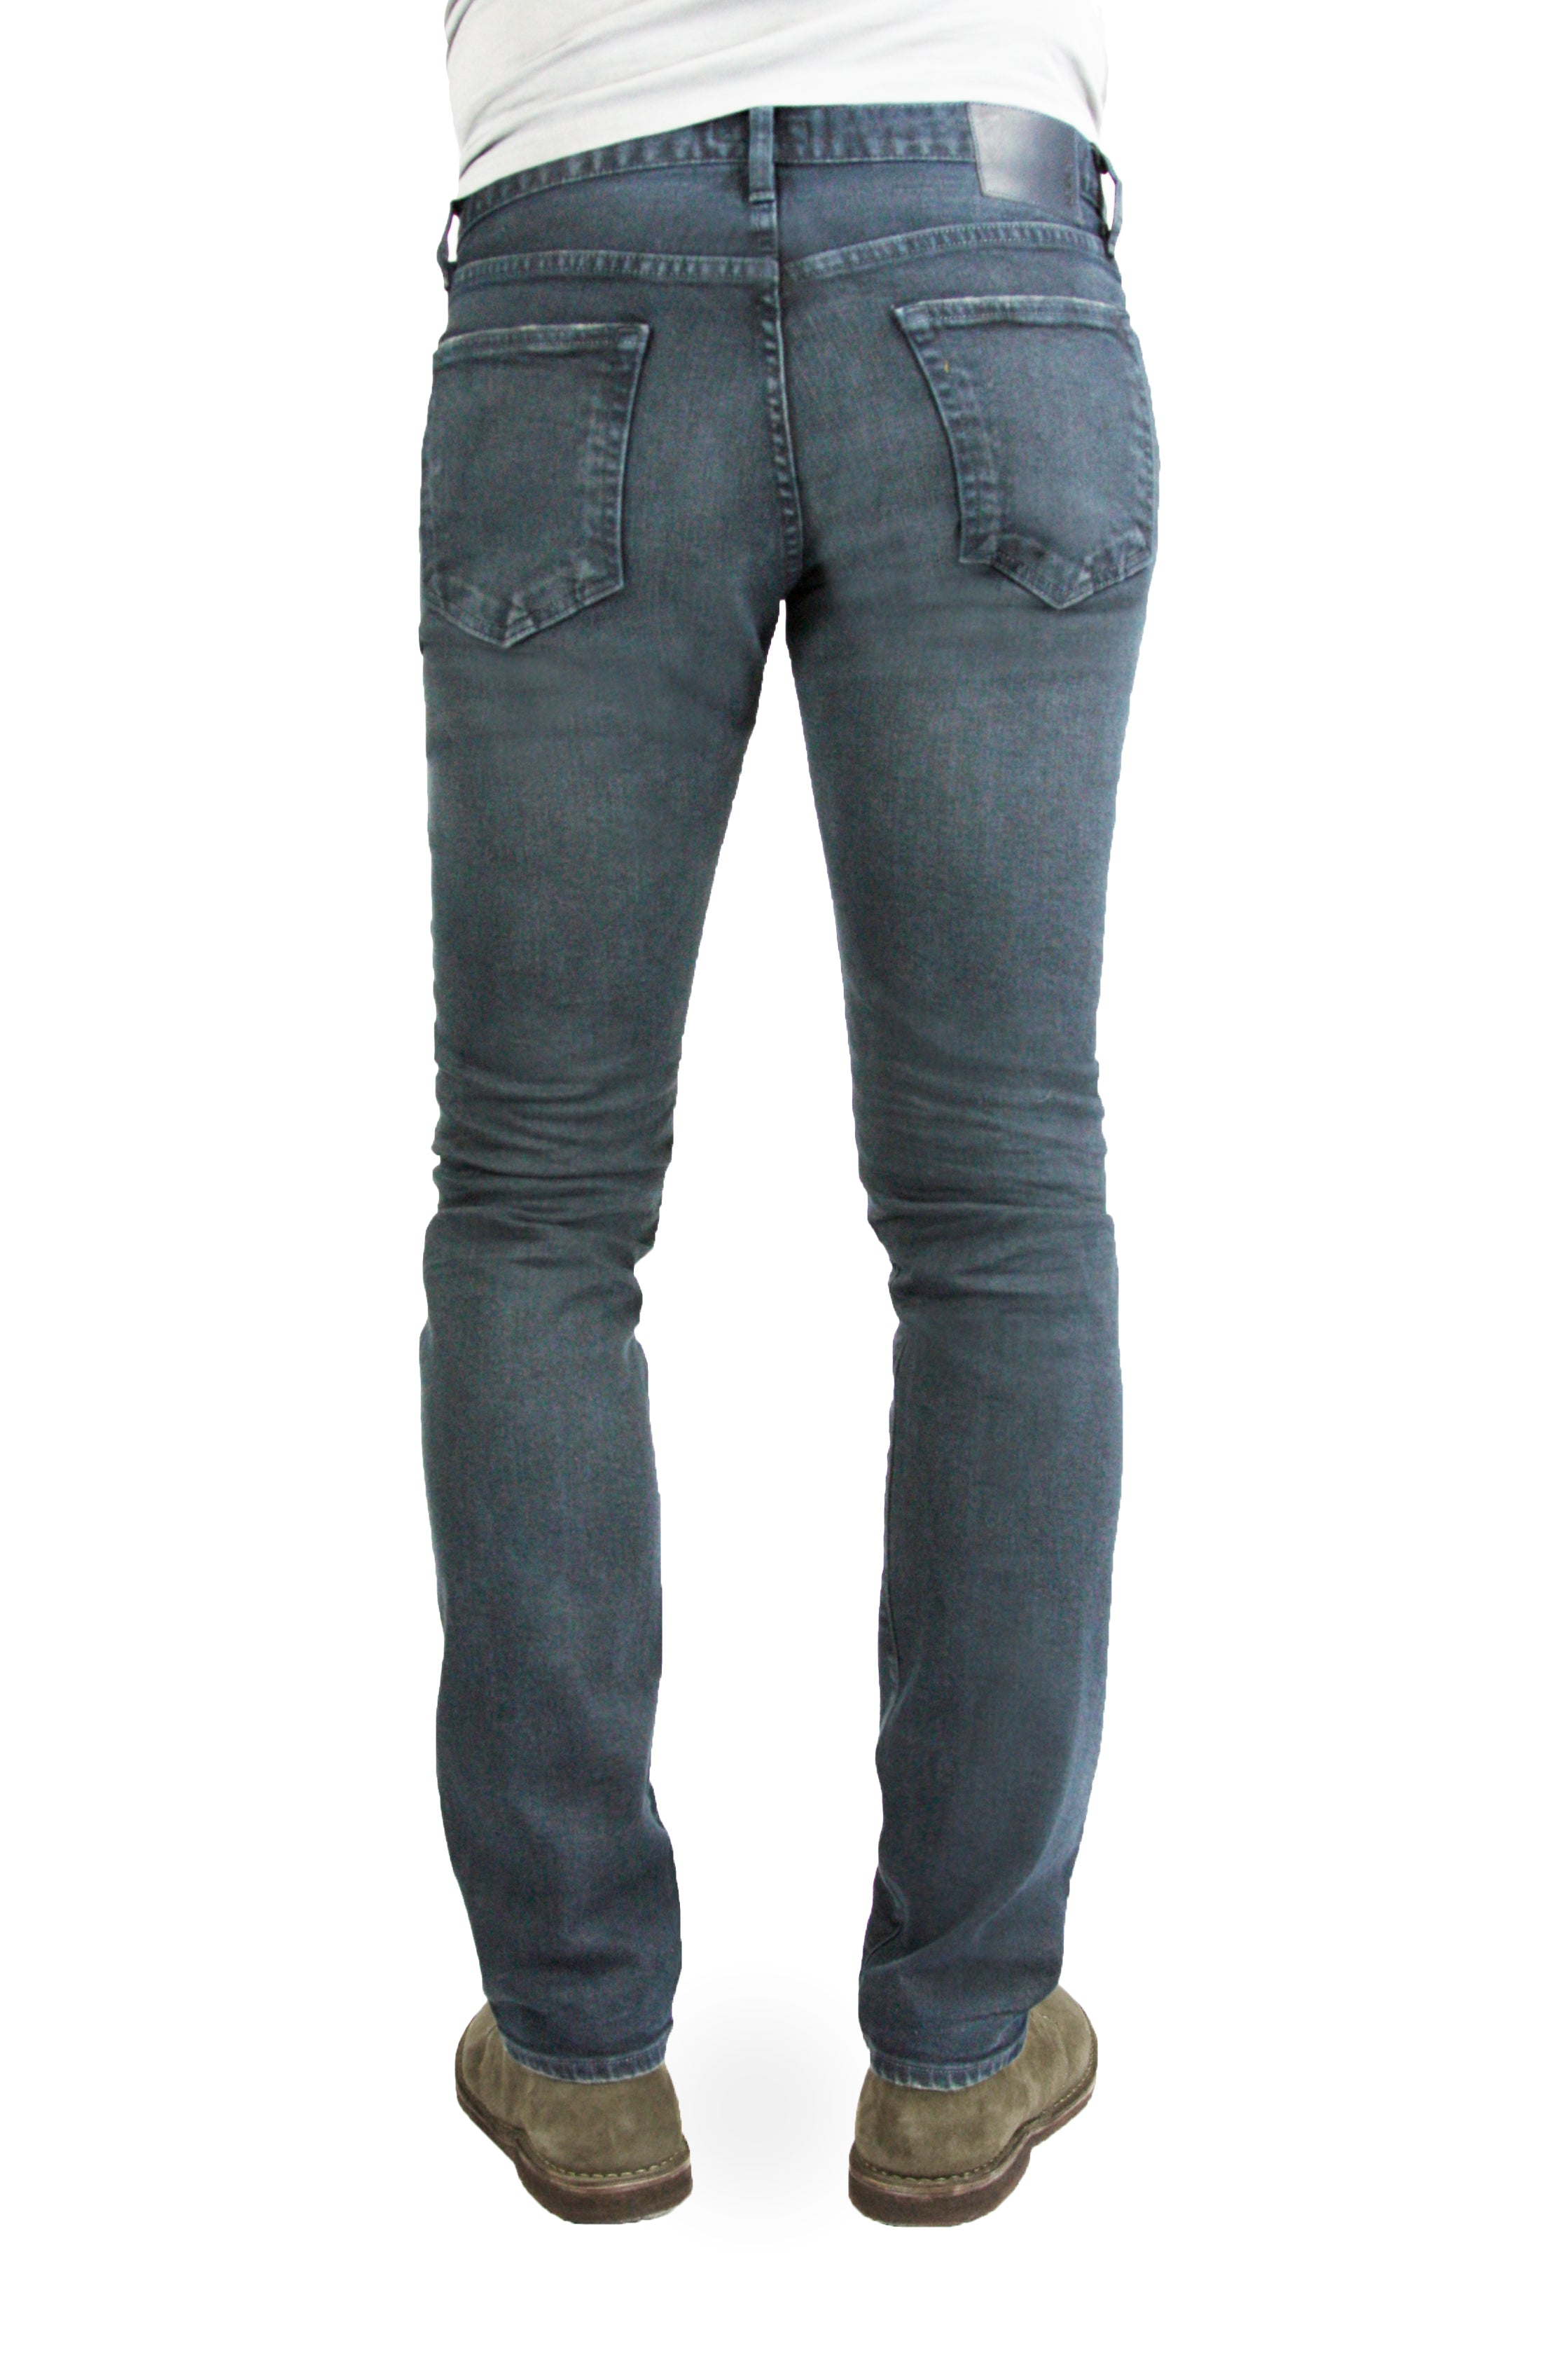 Back of S.M.N Studio's Hunter in Berlin Men's Jeans - Comfort stretch tapered slim fit jeans made in a blue grey colored comfort stretch Japanese denim and contrasted lightly with fading and whiskers for a vintage worn-in appeal